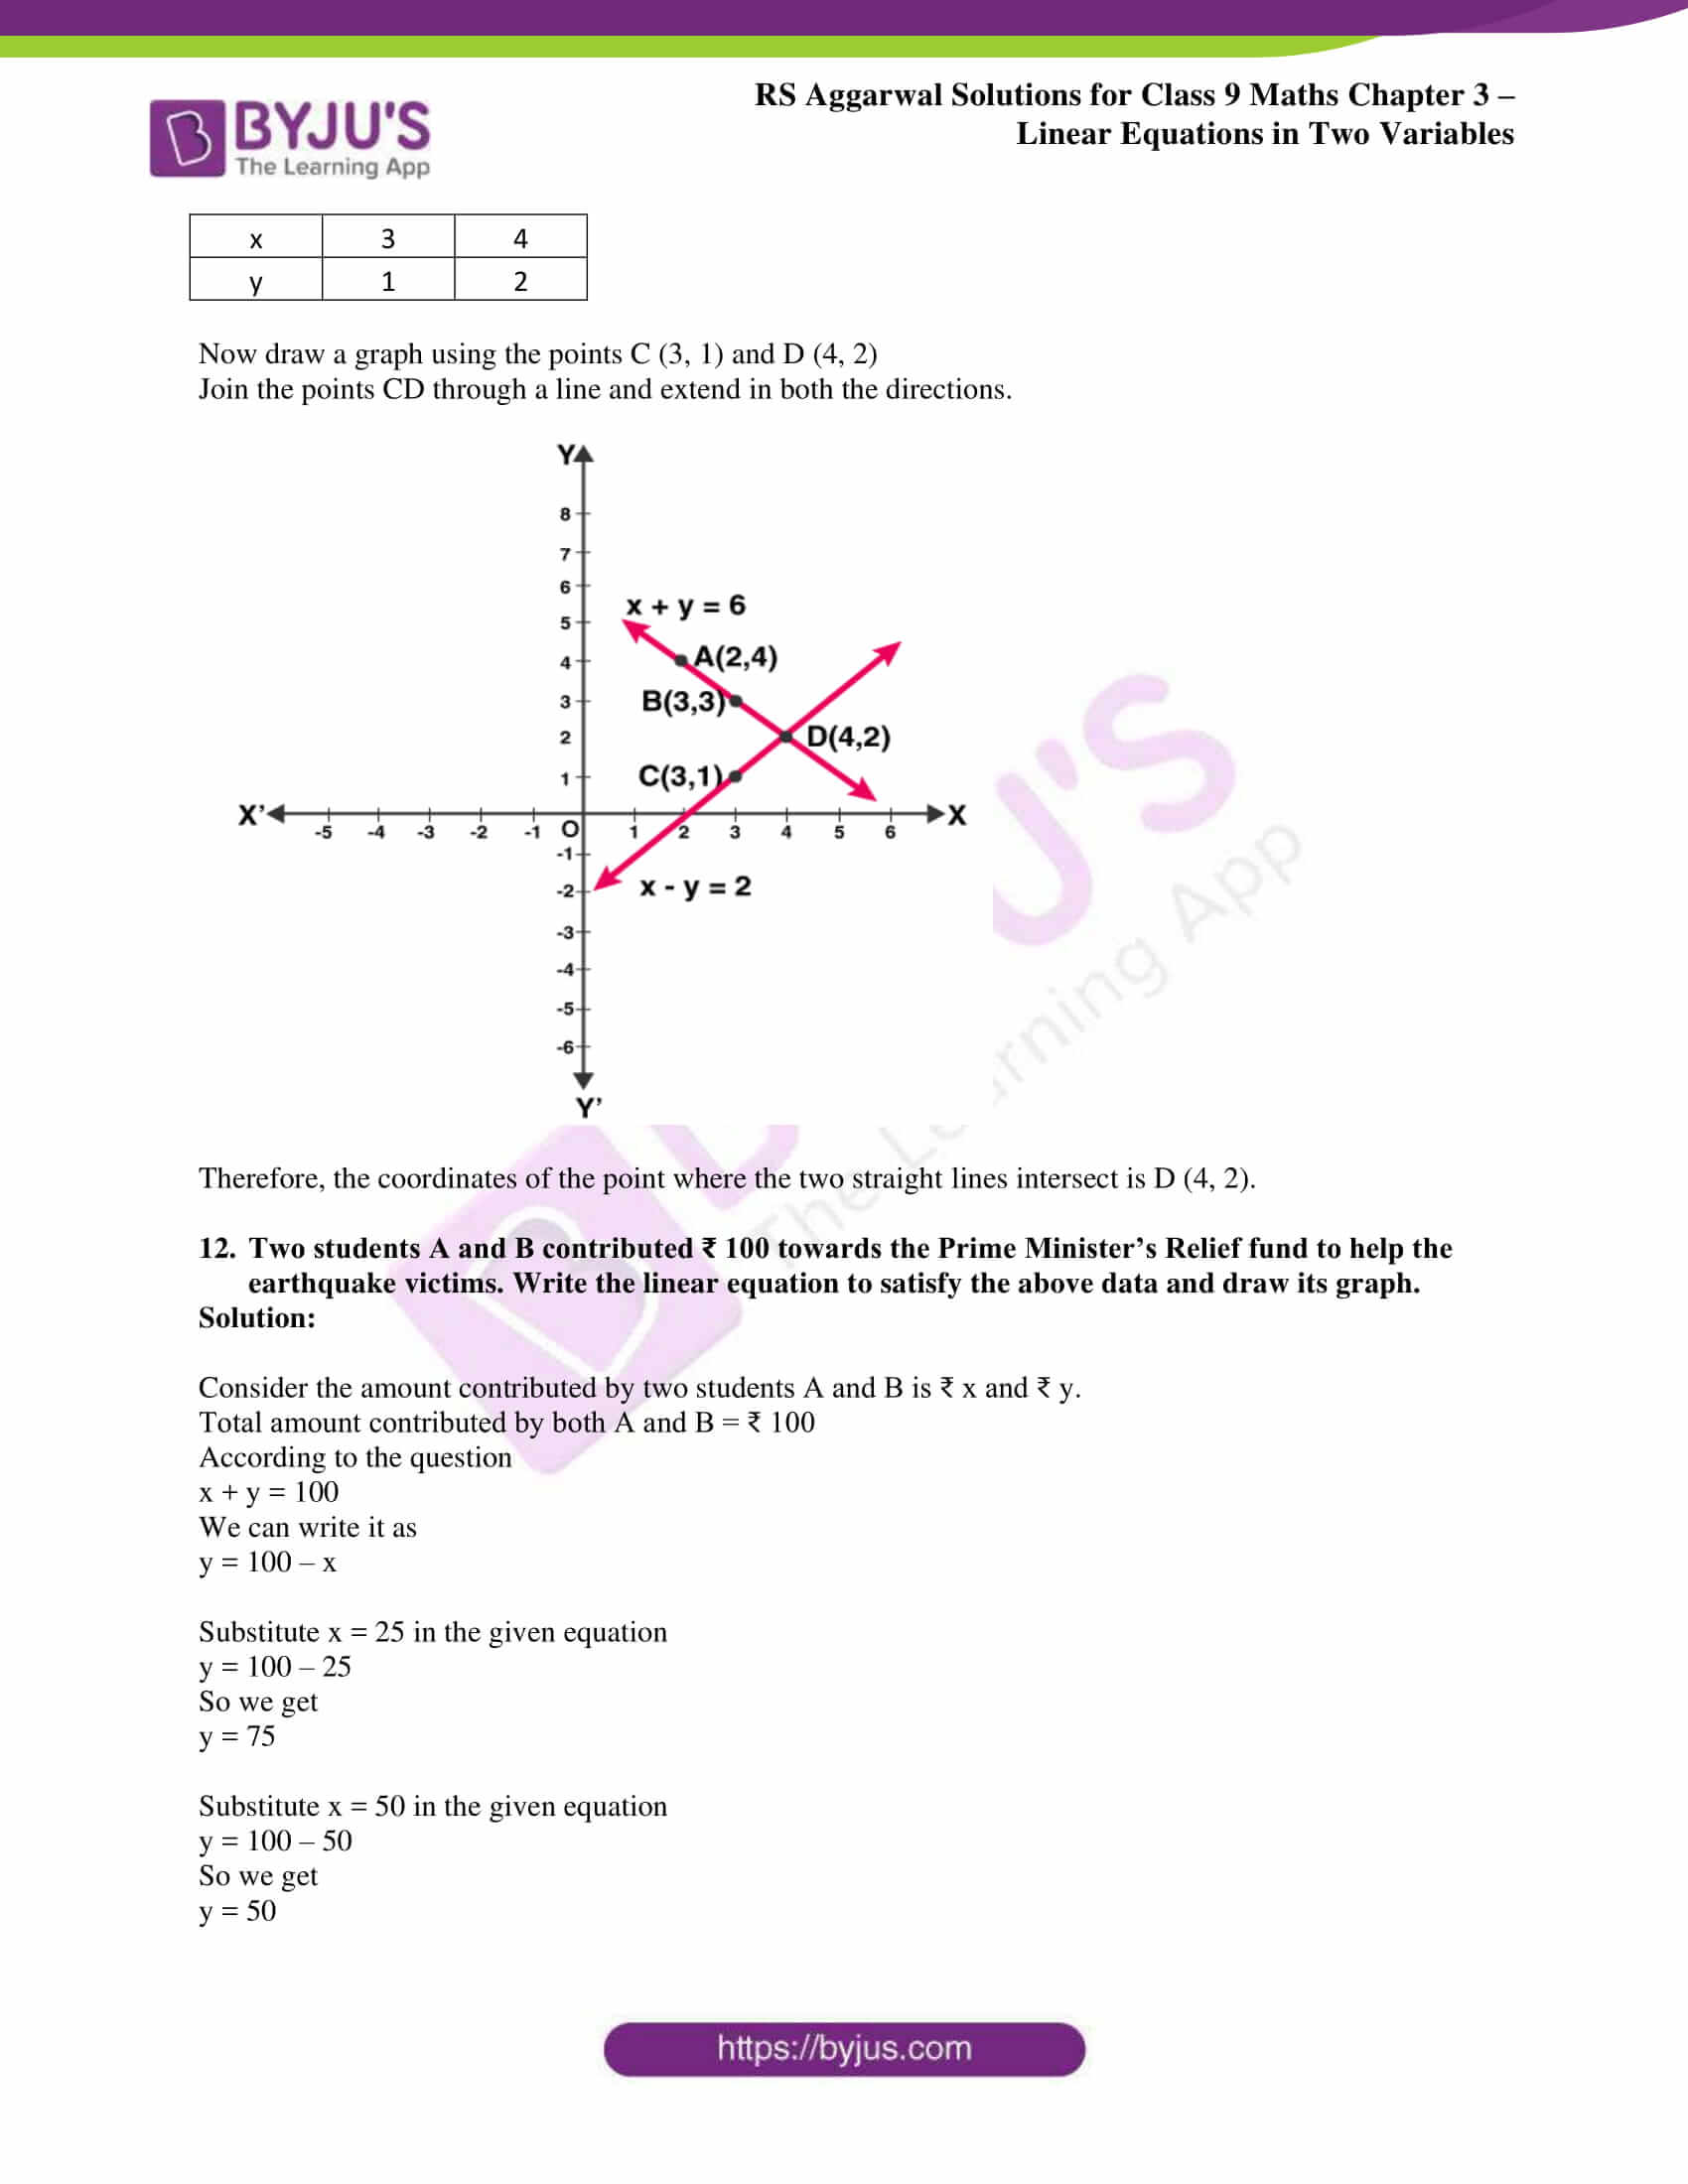 Linear Equations In Two Variables Class 9 Extra Questions